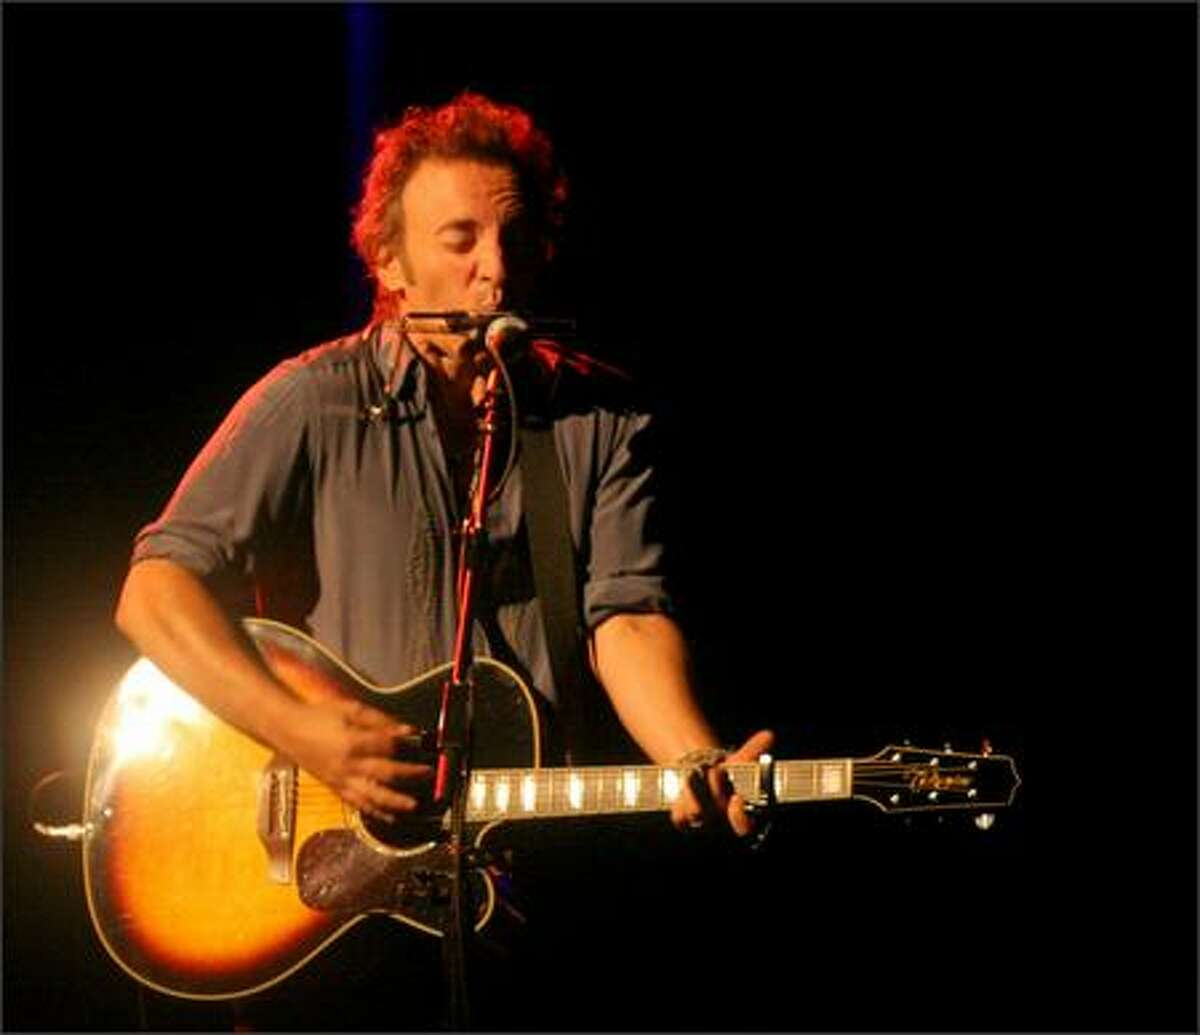 Bruce Springsteen performs the song